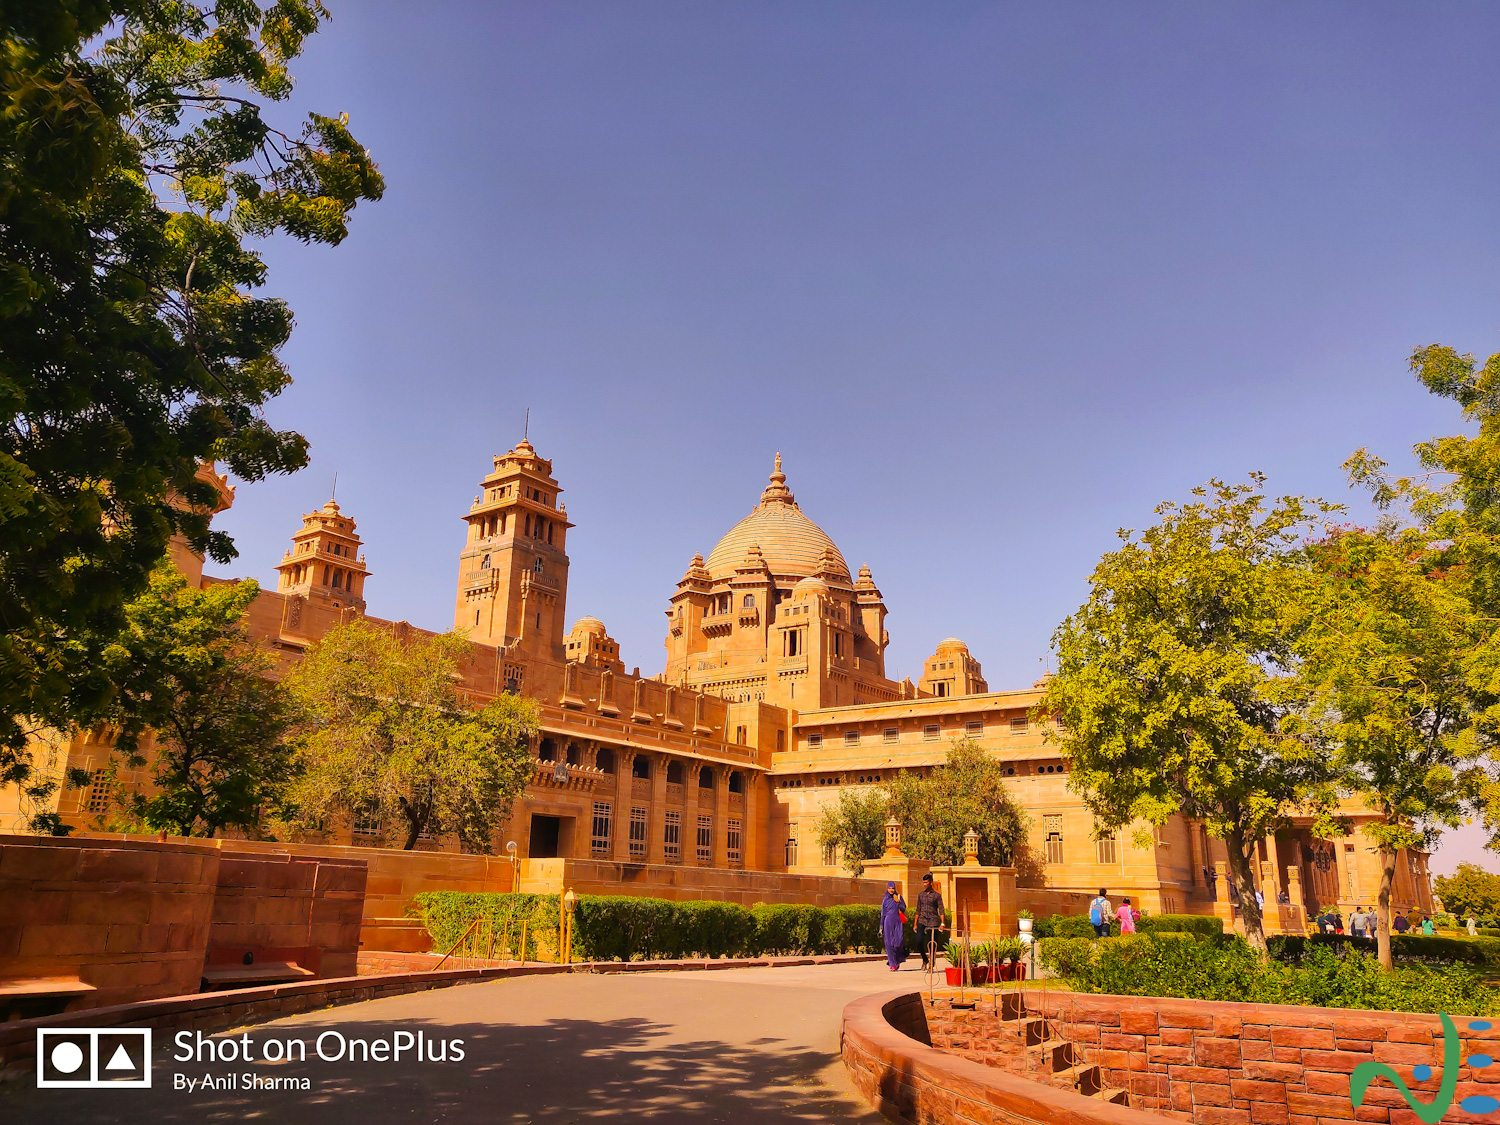 Umaid Bhawan Palace is one of the famous places for visit in Jodhpur, Rajasthan